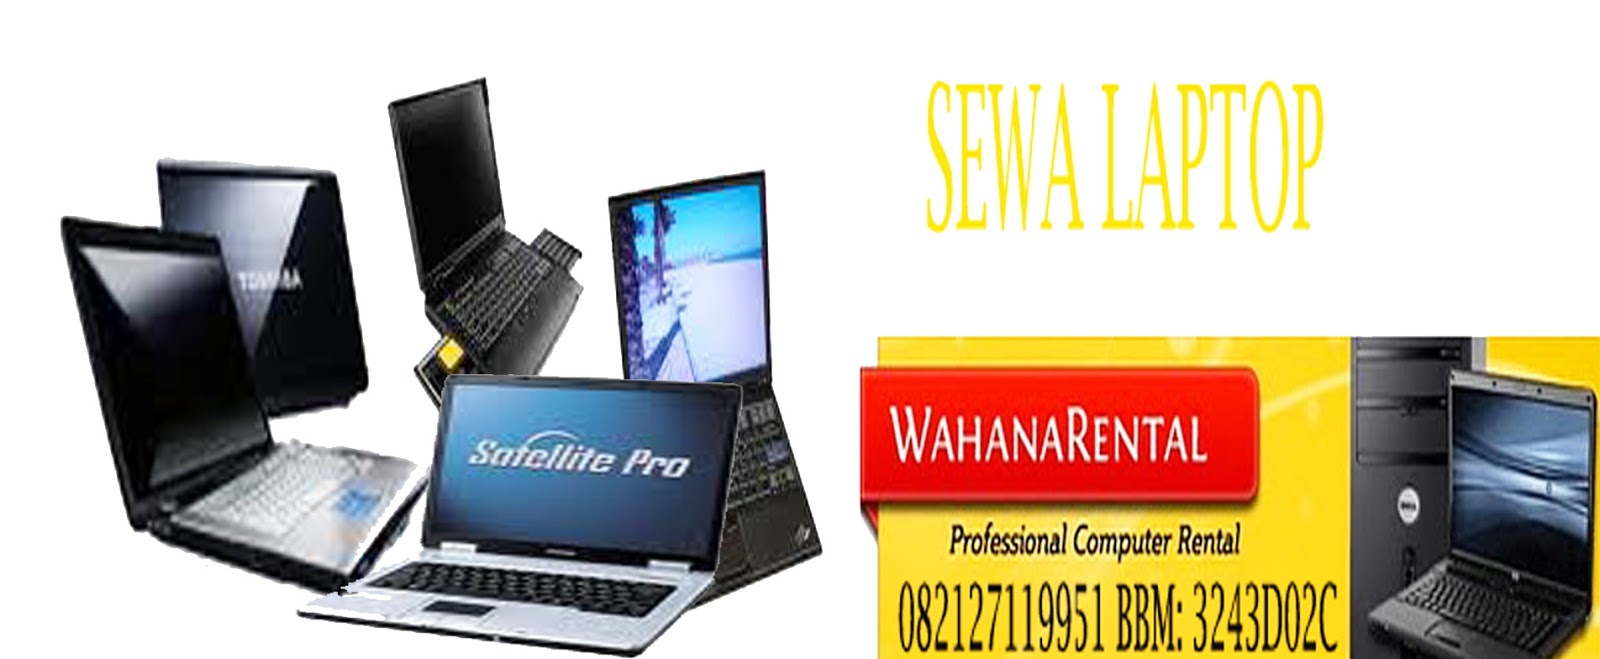 sewa laptop, rental laptop, sewa notebook, rental notebook